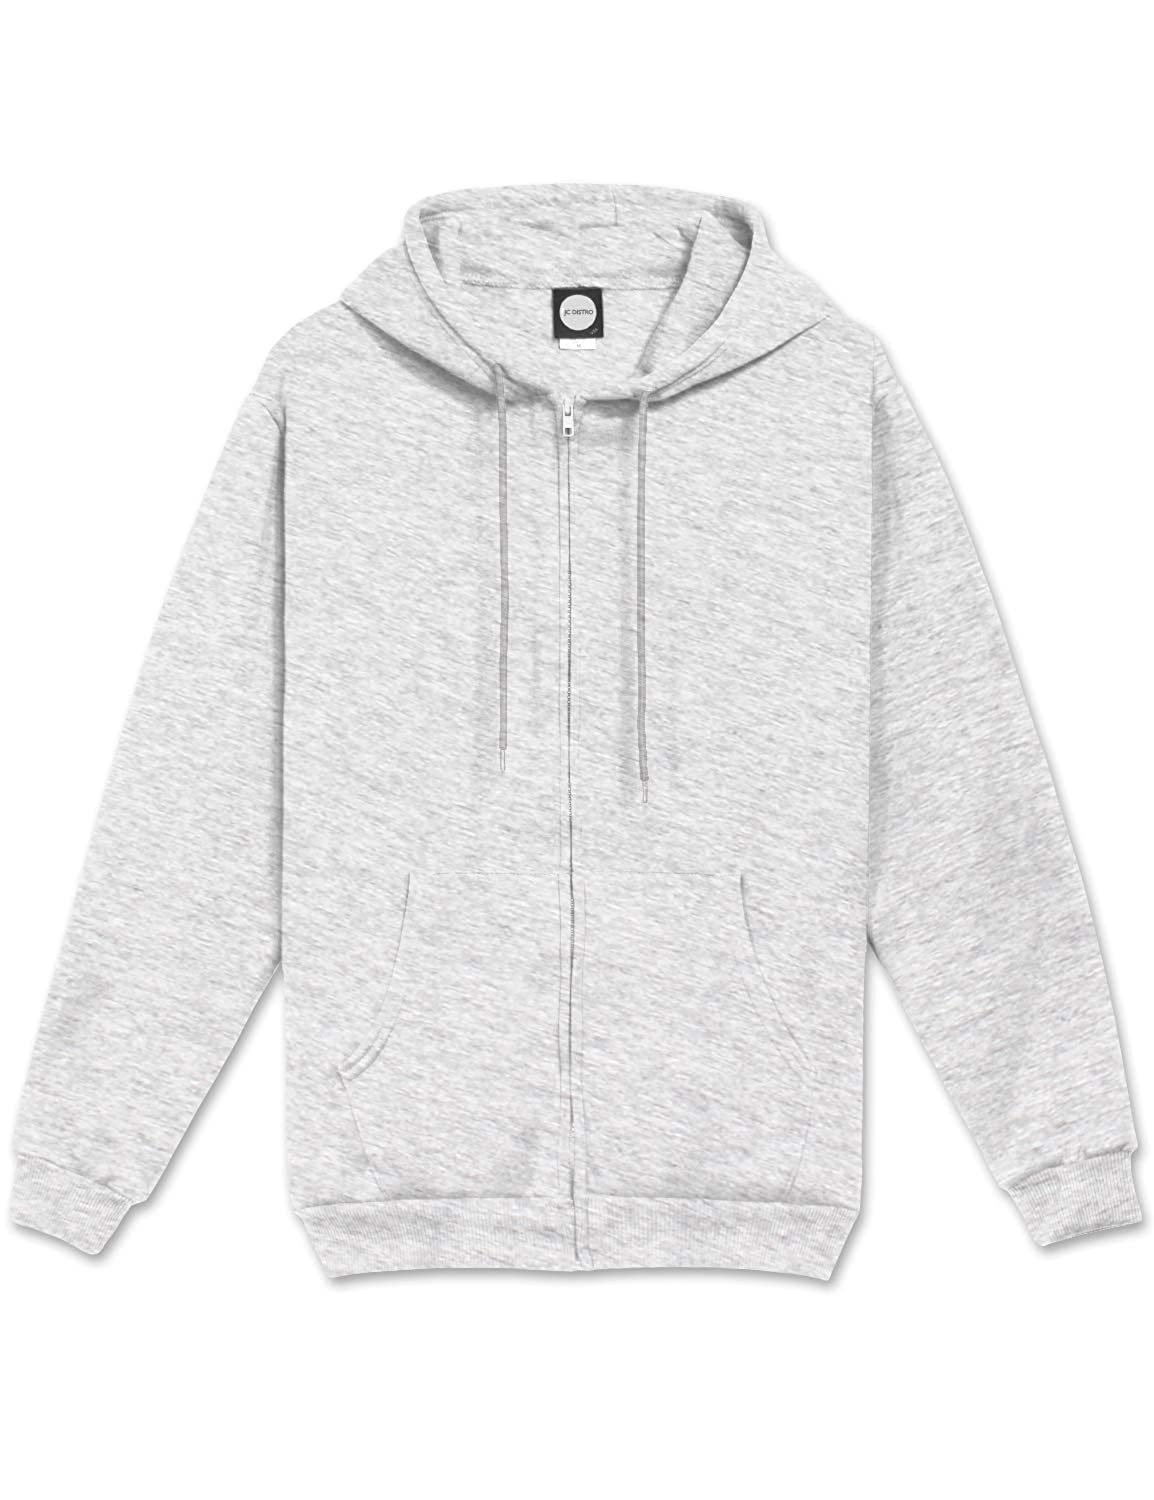 6819dc732cb JC DISTRO Mens Hipster Hip Hop Basic Unisex Zip-Up Hoodie Jacket (Size Upto  5XL Big Size) at Amazon Men s Clothing store